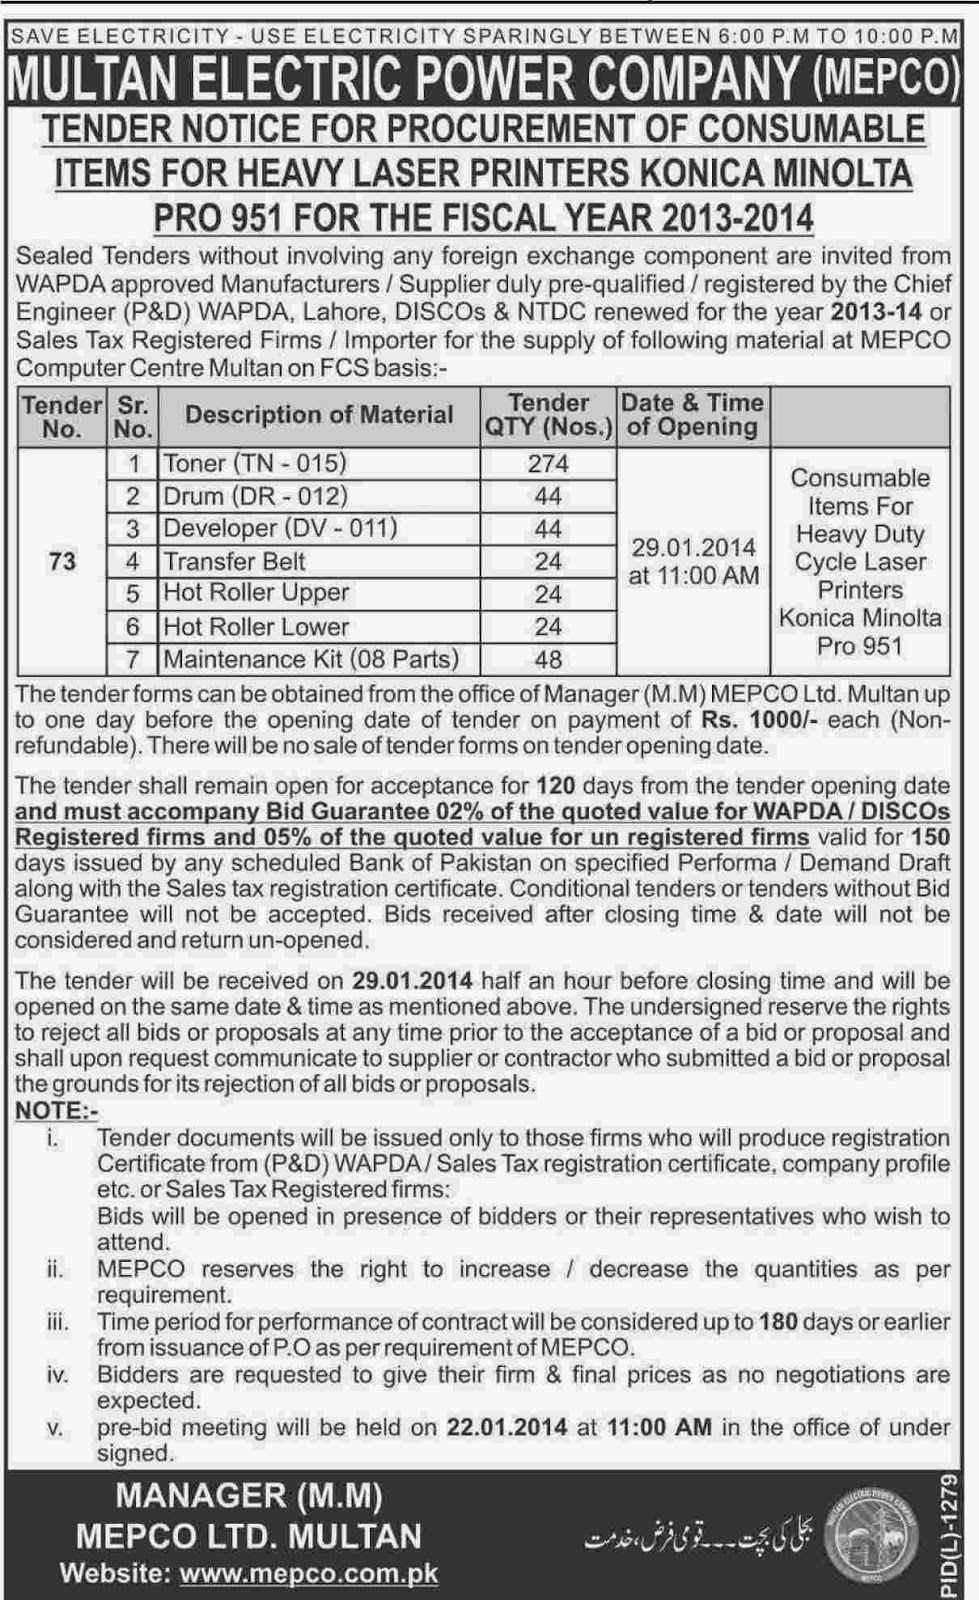 Online PapersPk: Multan Electric Power Company Mepco Tender Notice